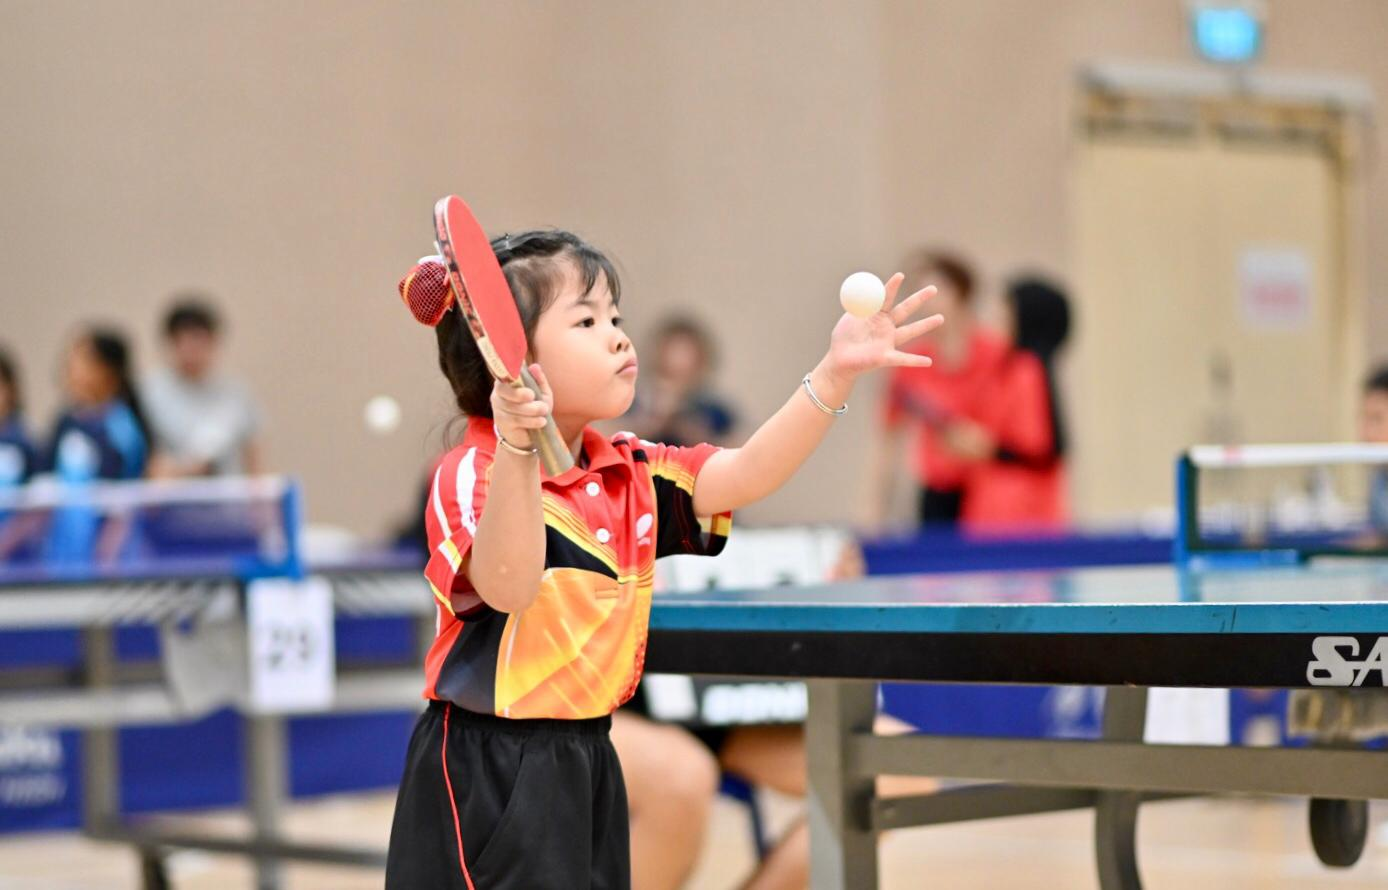 School Holidays Table Tennis Camp @ Clementi Sports Hall (2 days)